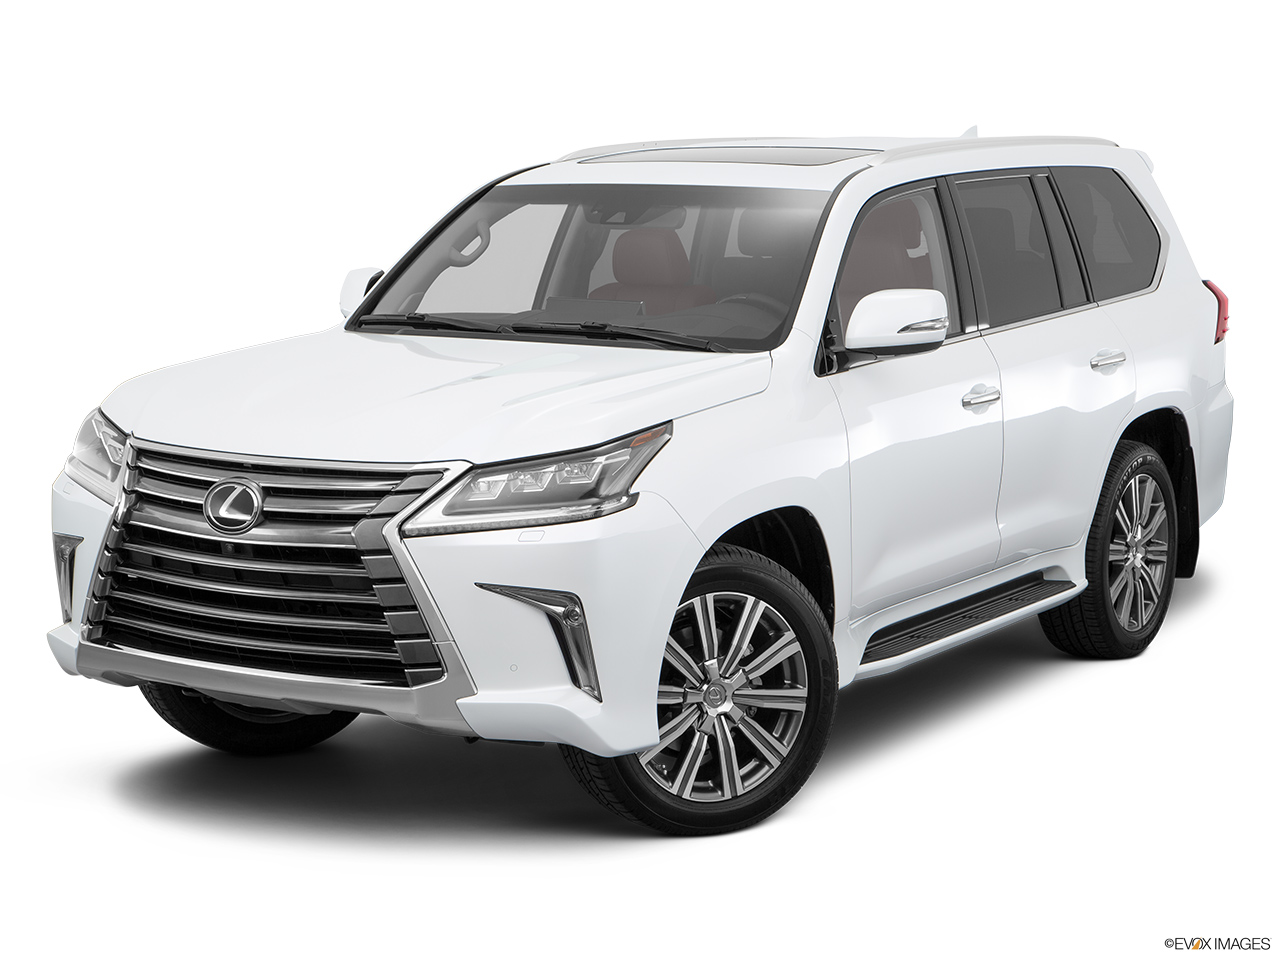 2018 lexus lx prices in kuwait, gulf specs & reviews for kuwait